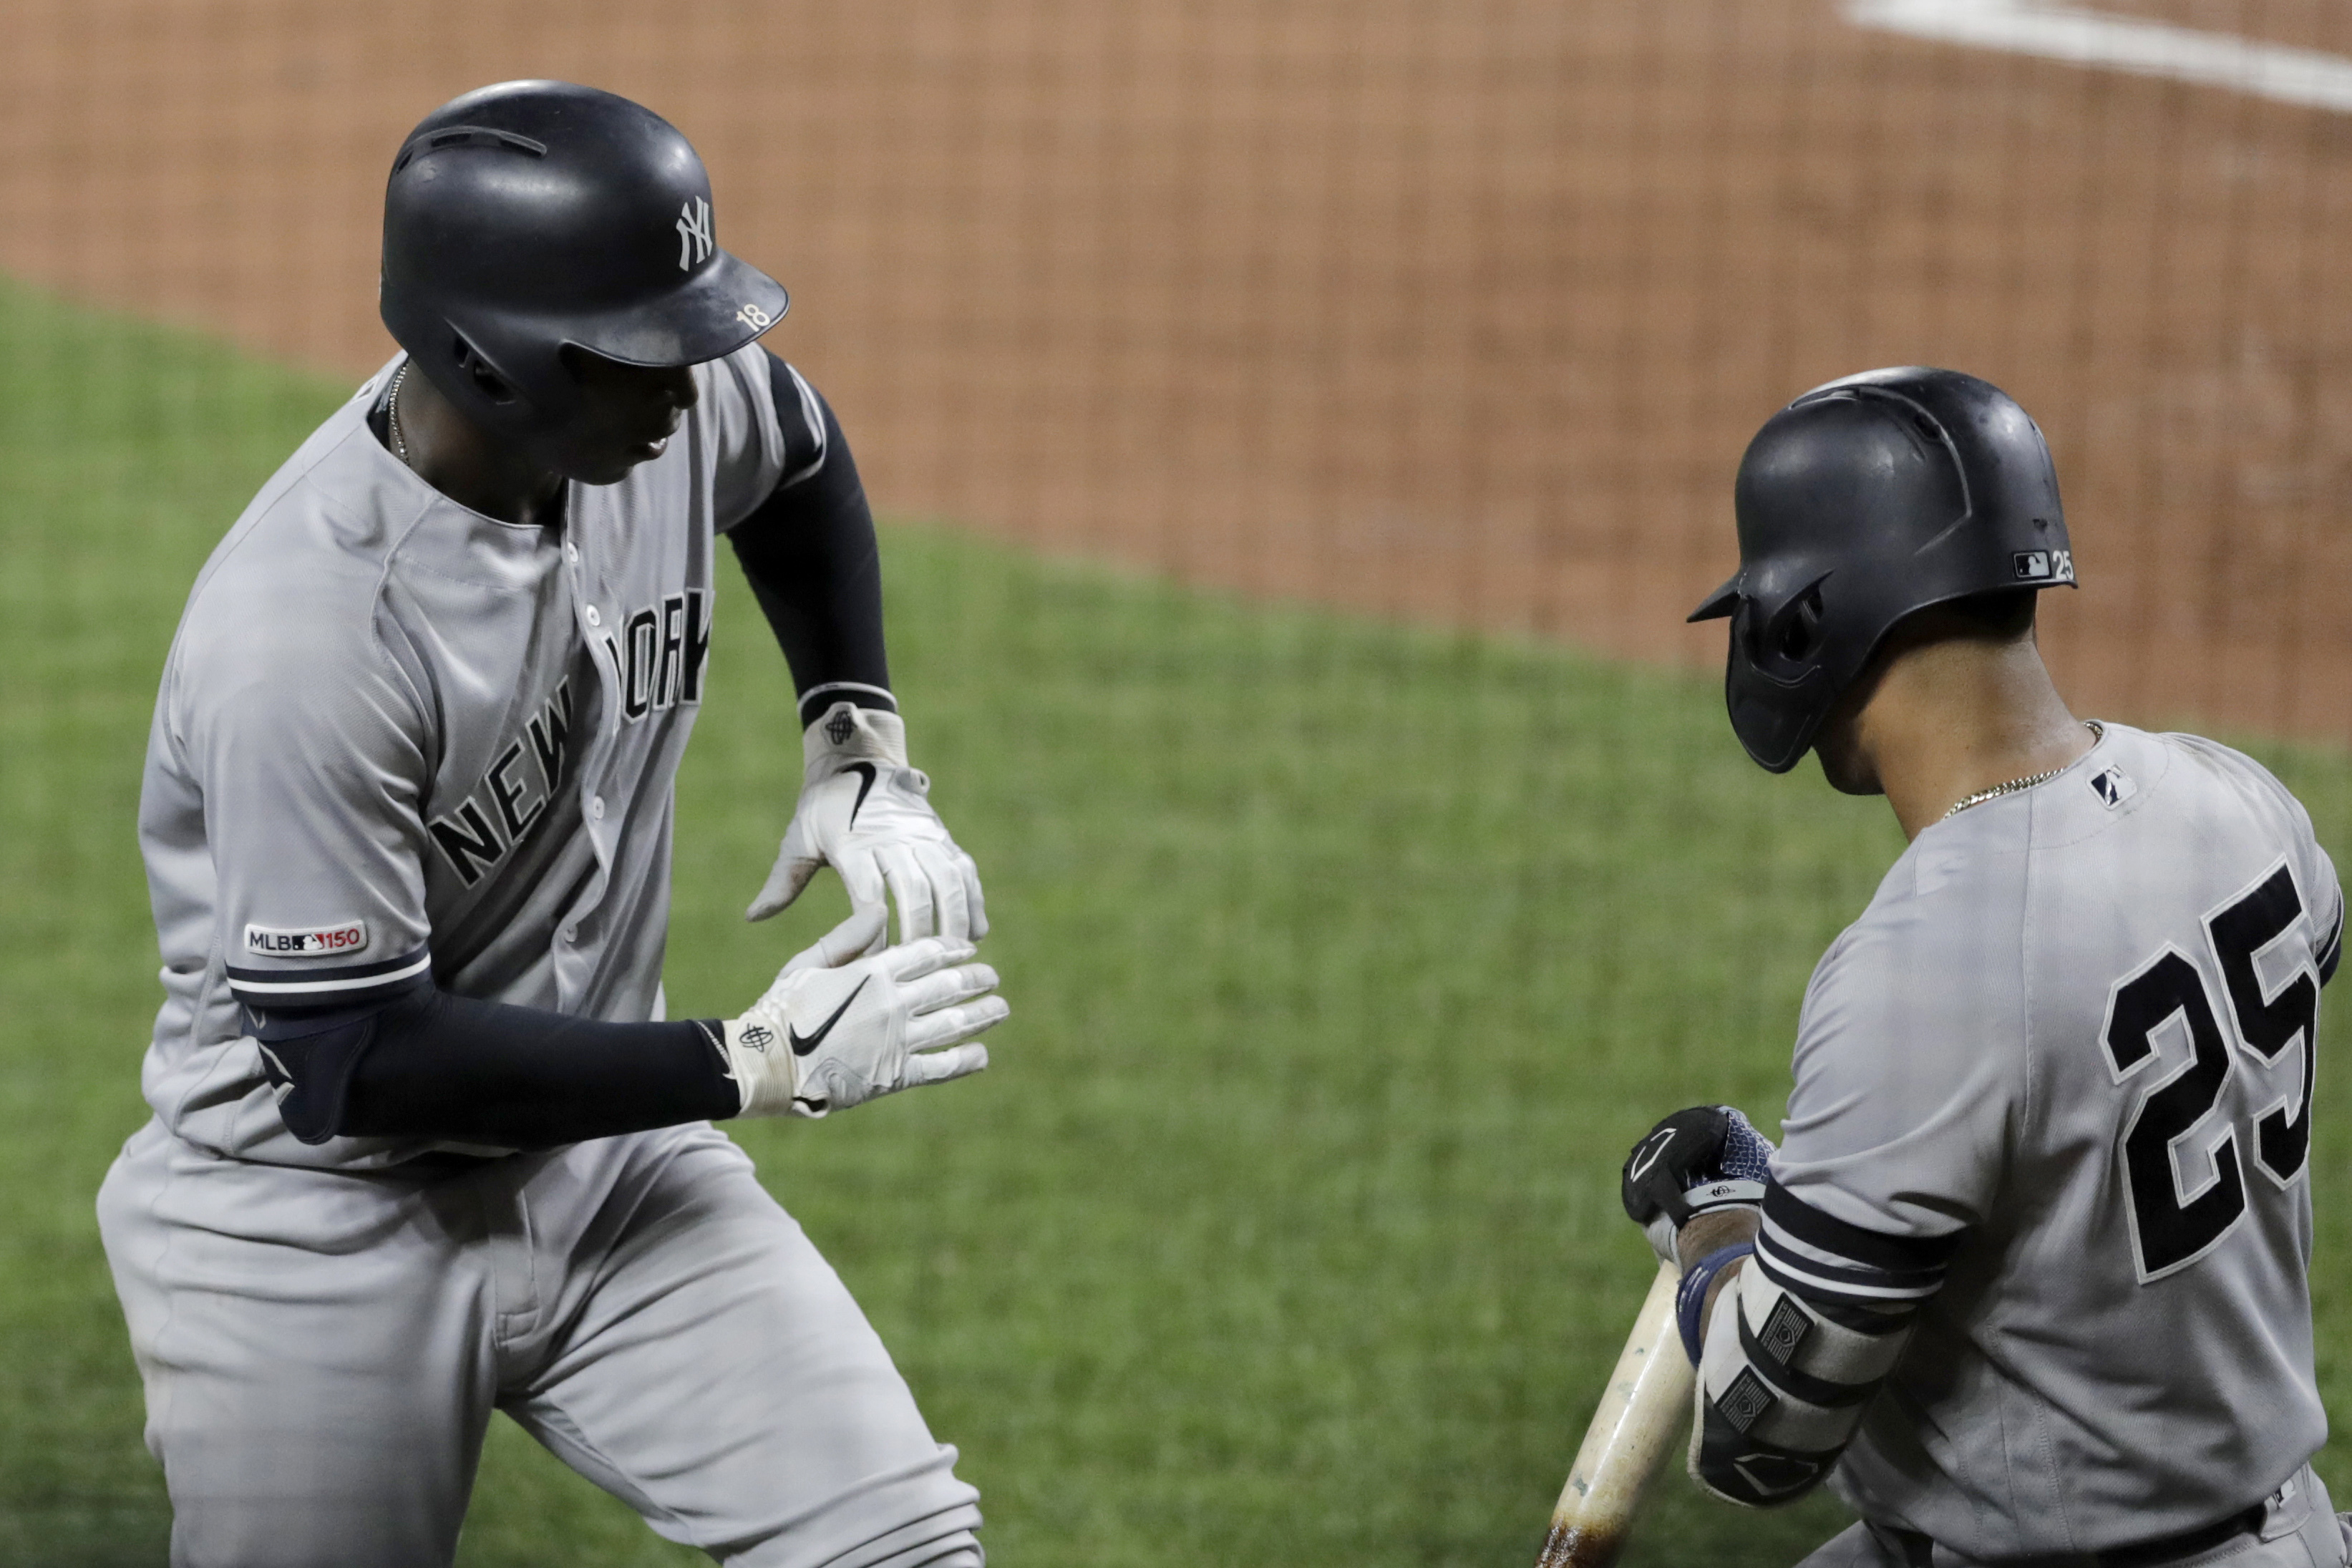 Yankees infielder Torres leaves game with 'core pain'